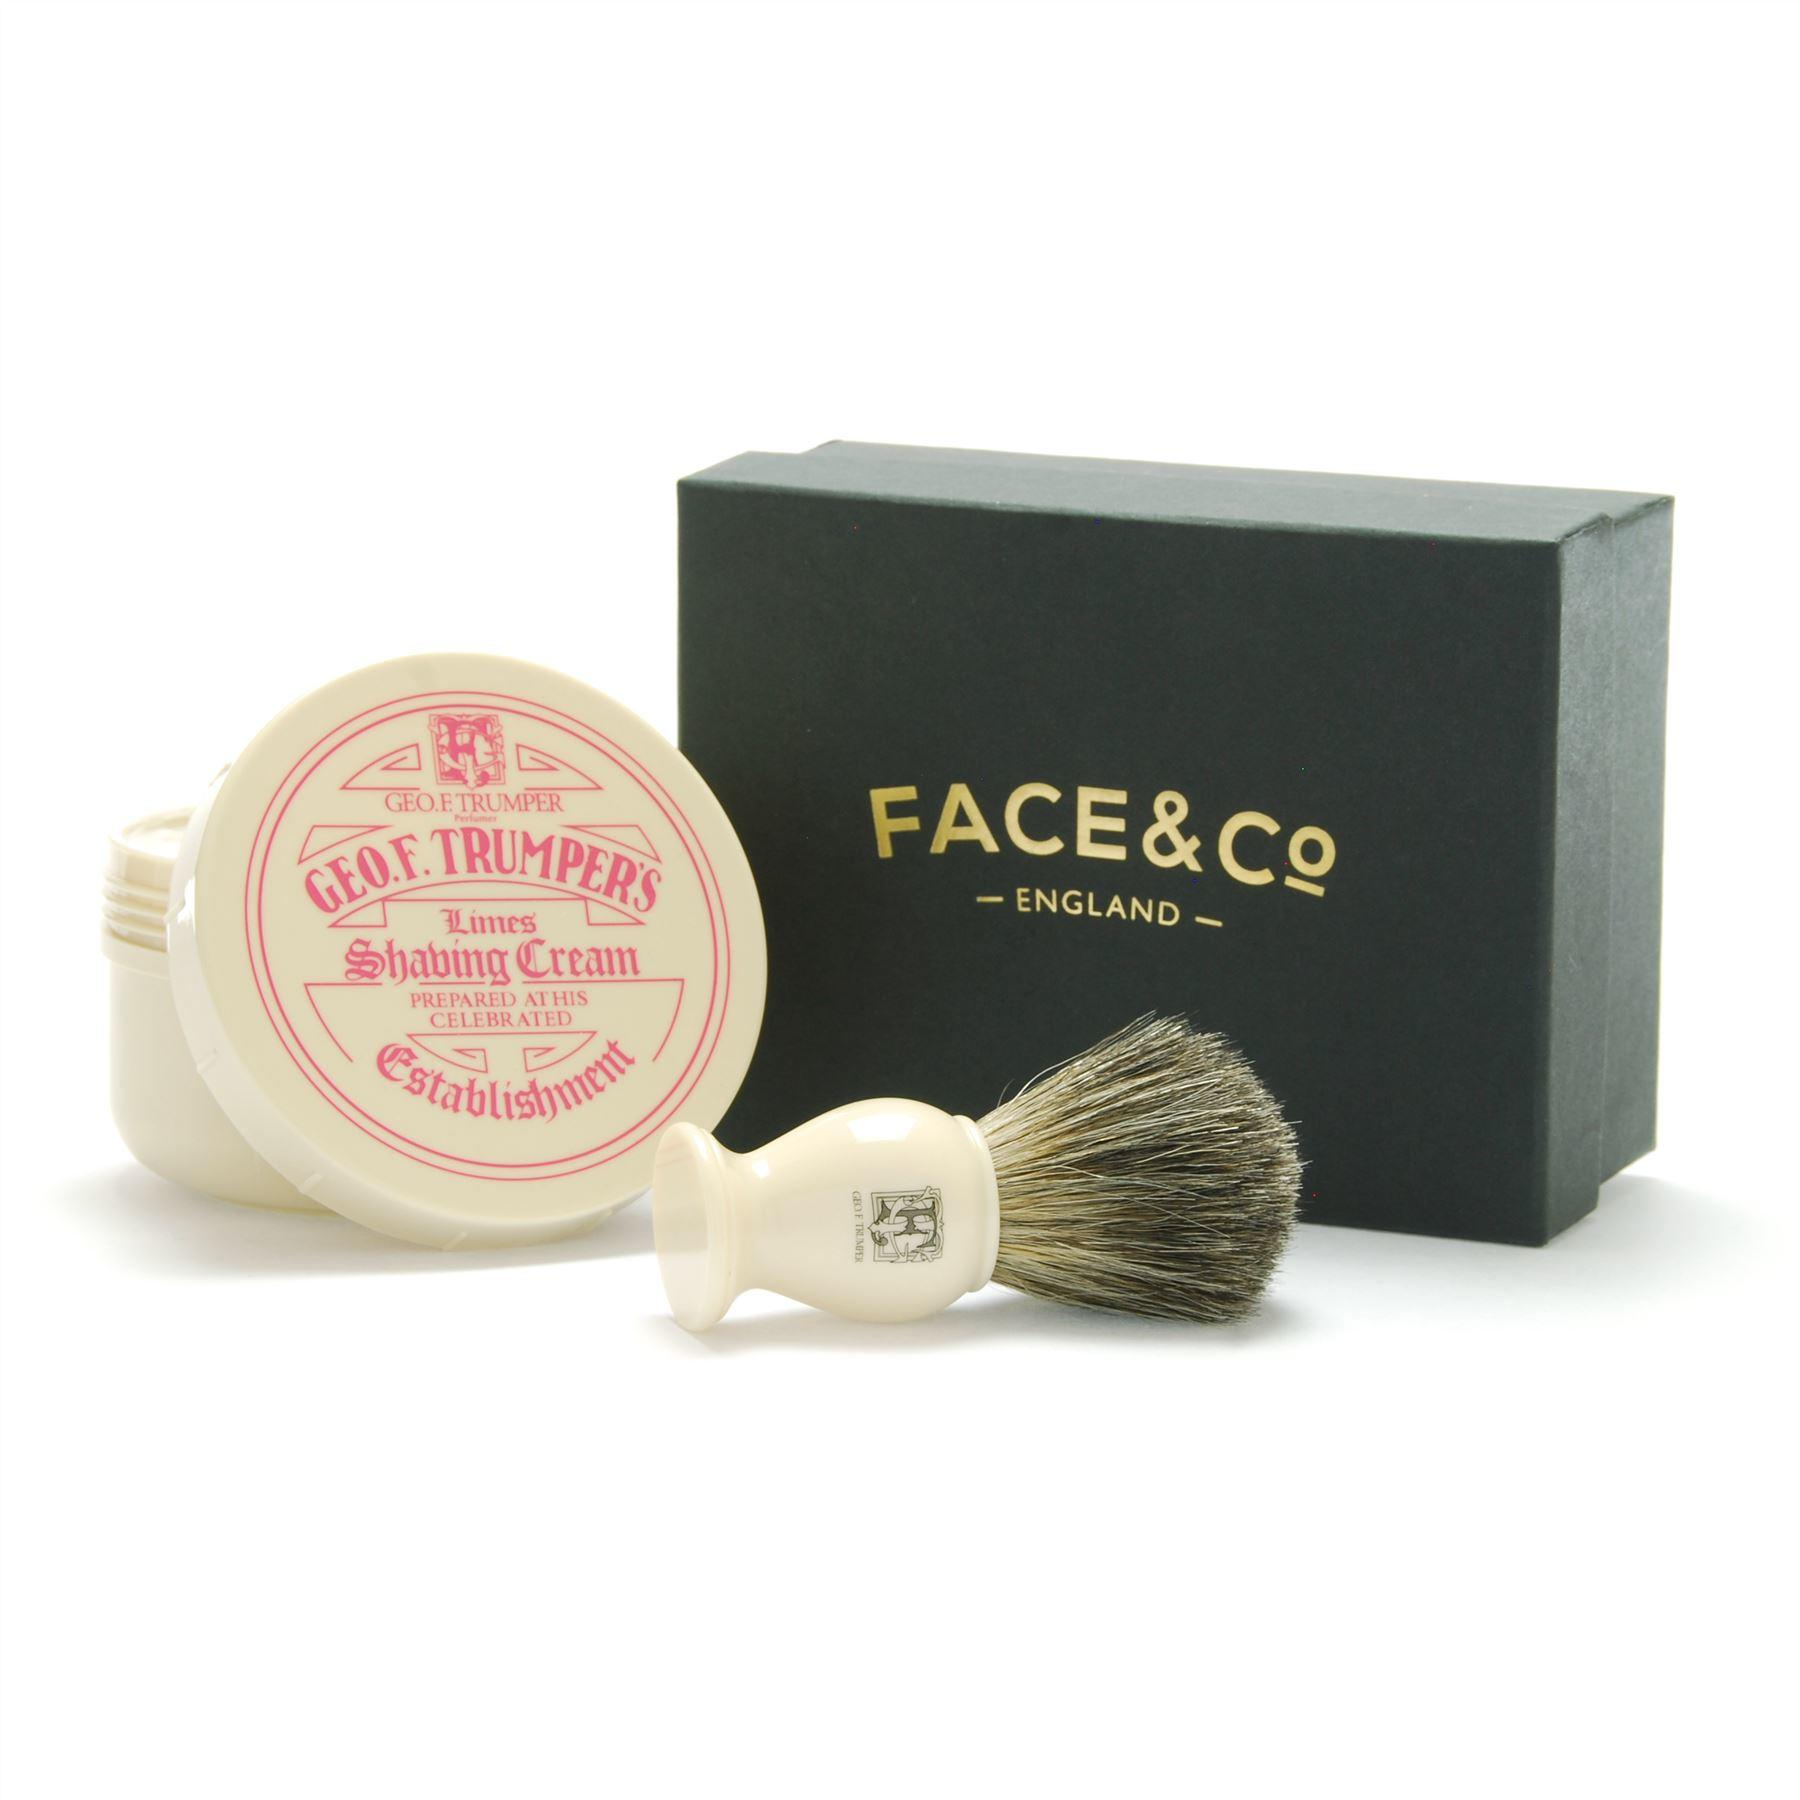 Geo F Trumper Ivory, Pure Badger Shaving Brush & Limes Shave Cream Gift Set